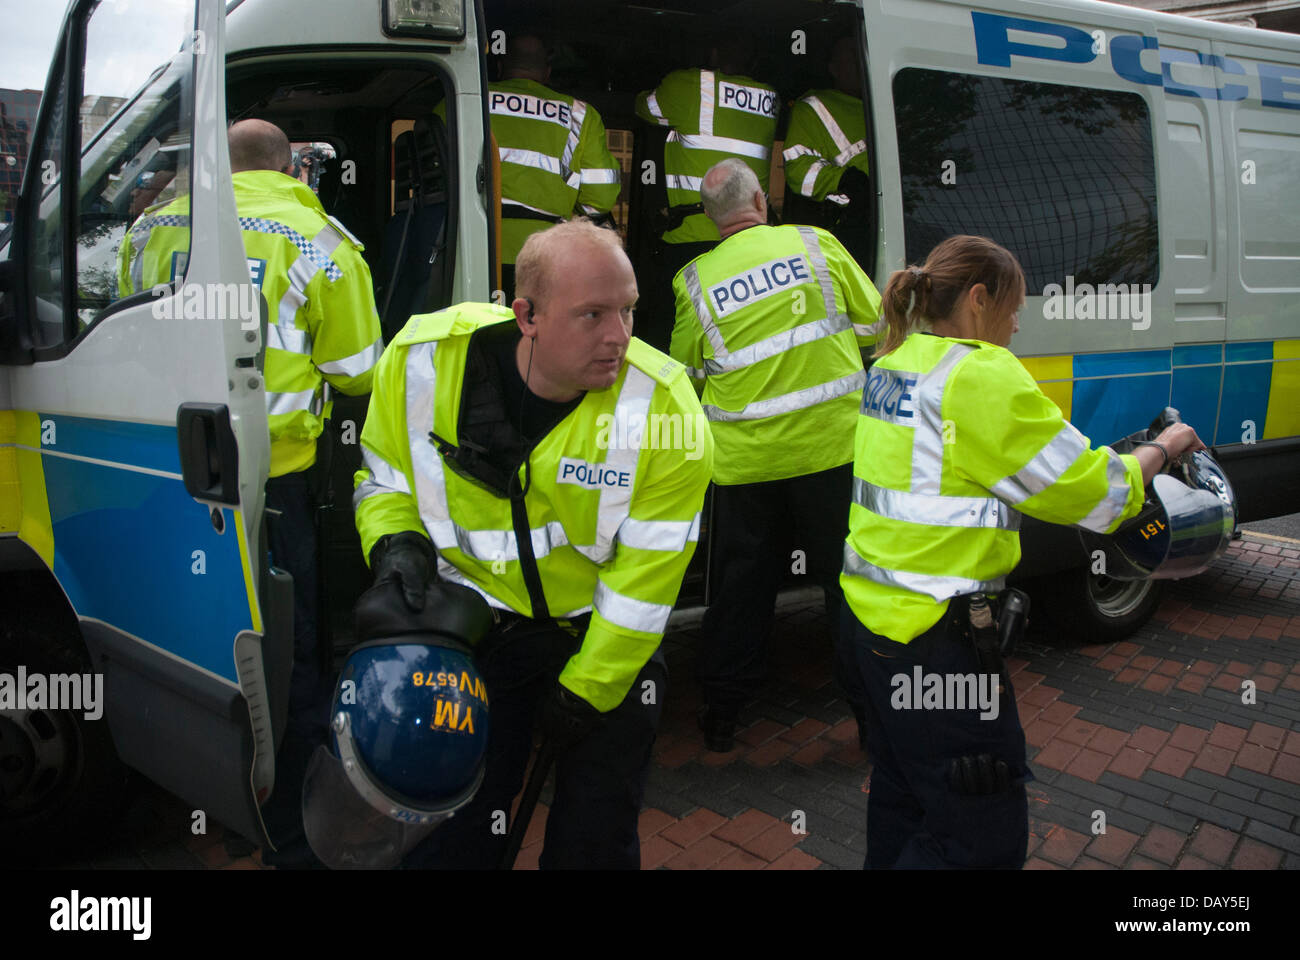 Birmingham, UK. 20th July, 2013. Police scramble for riot gear as they struggle to control a crowd of English Defence - Stock Image